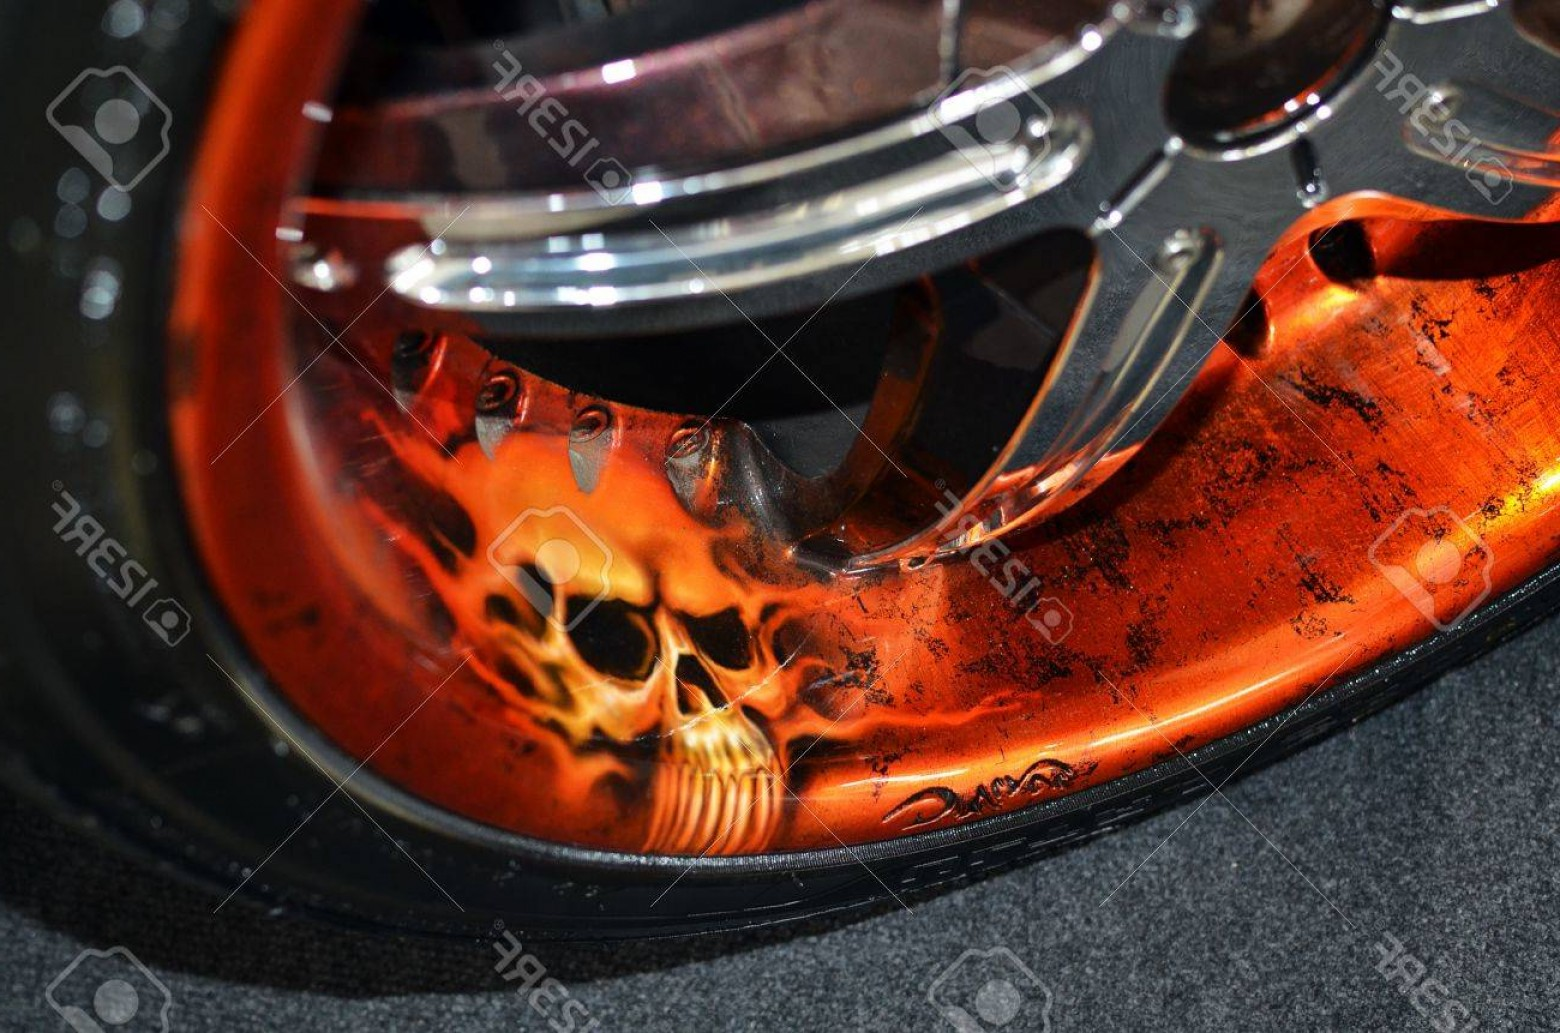 Airbrush Flaming Skull Vectors: Photobucharest Romania October Custom Airbrushed Rims With Cracked Texture And Skull Painting Dis